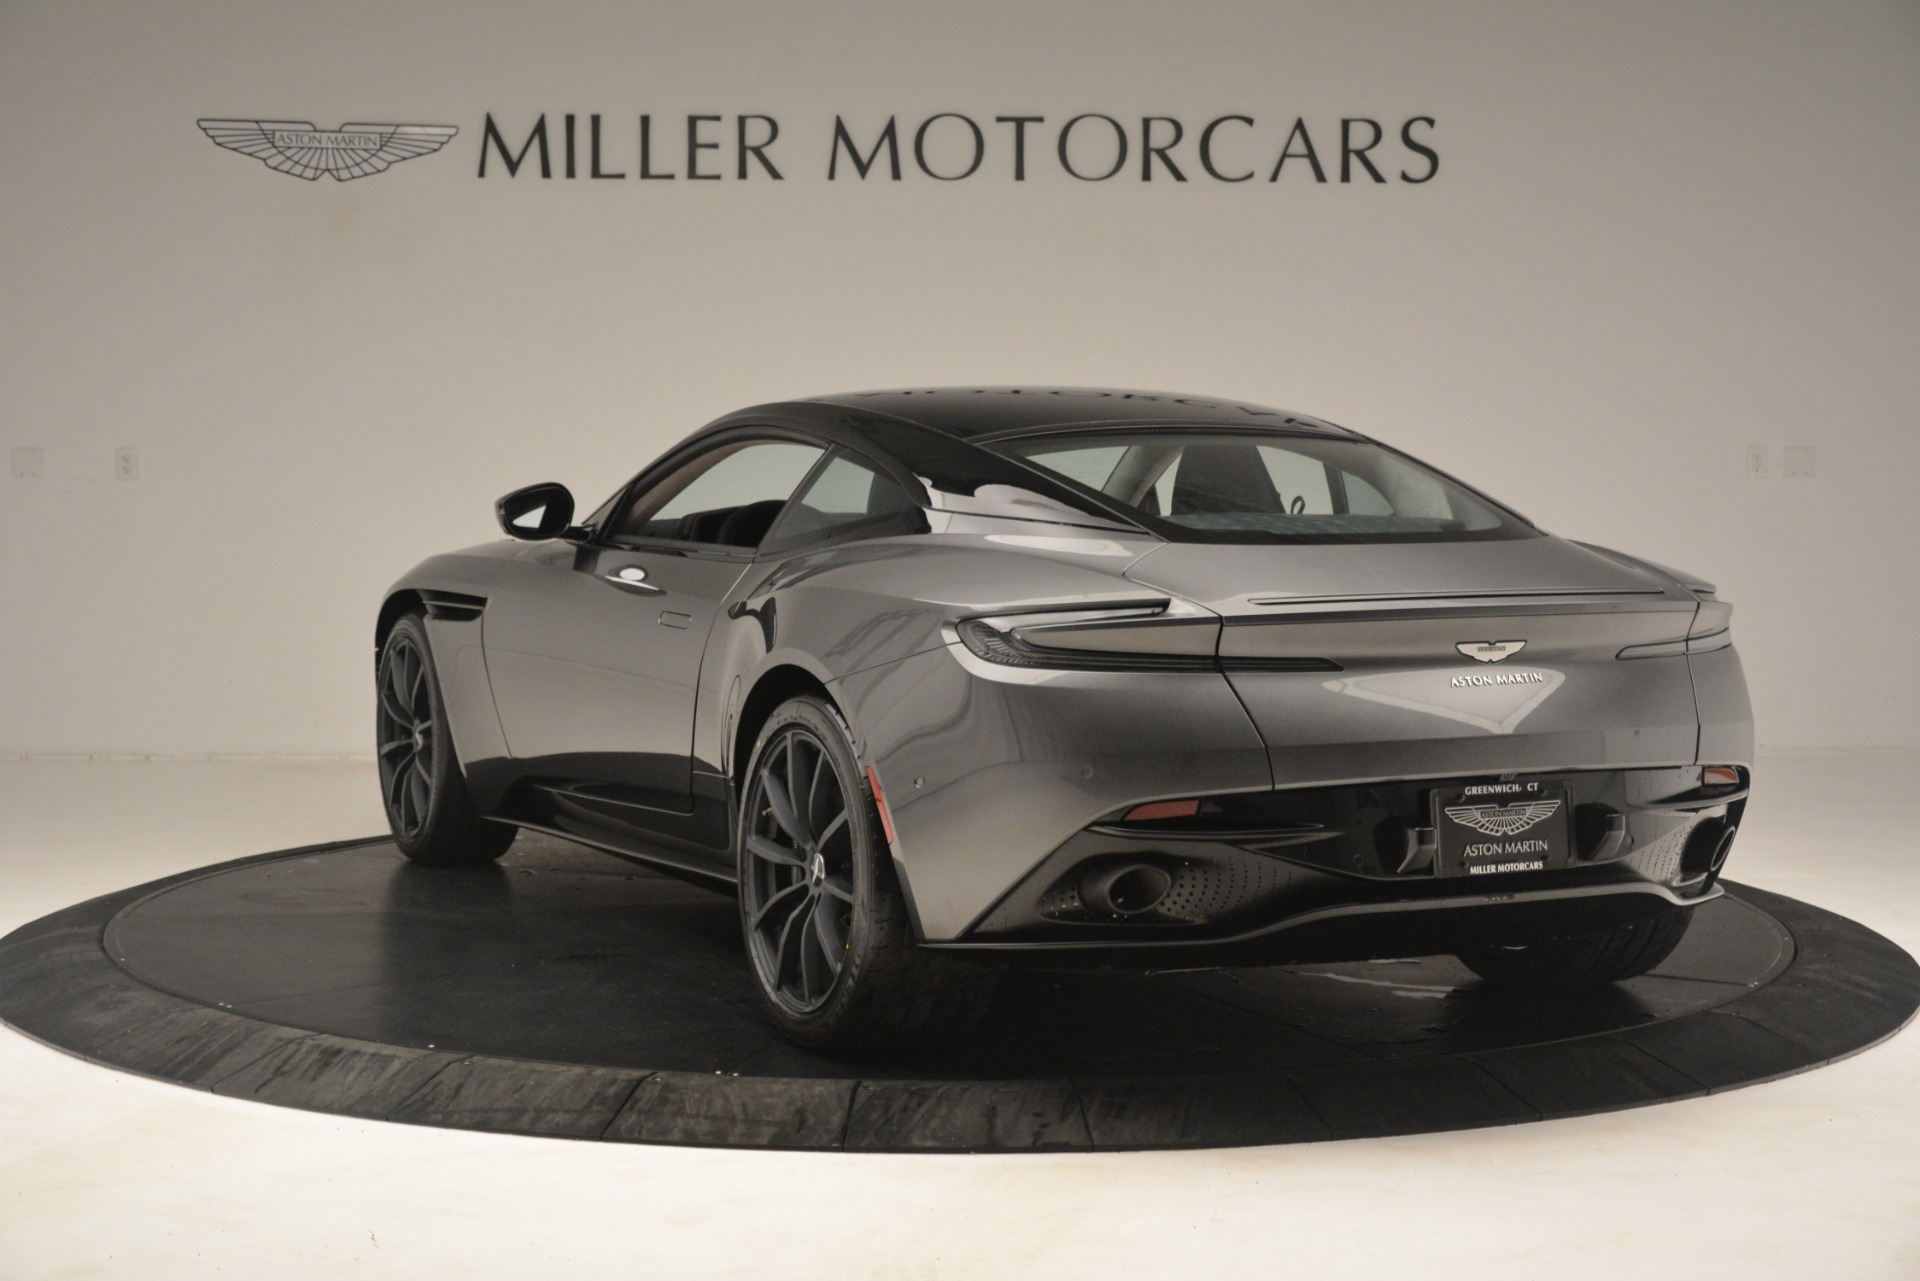 New 2019 Aston Martin DB11 V12 AMR Coupe For Sale In Greenwich, CT 3123_p5